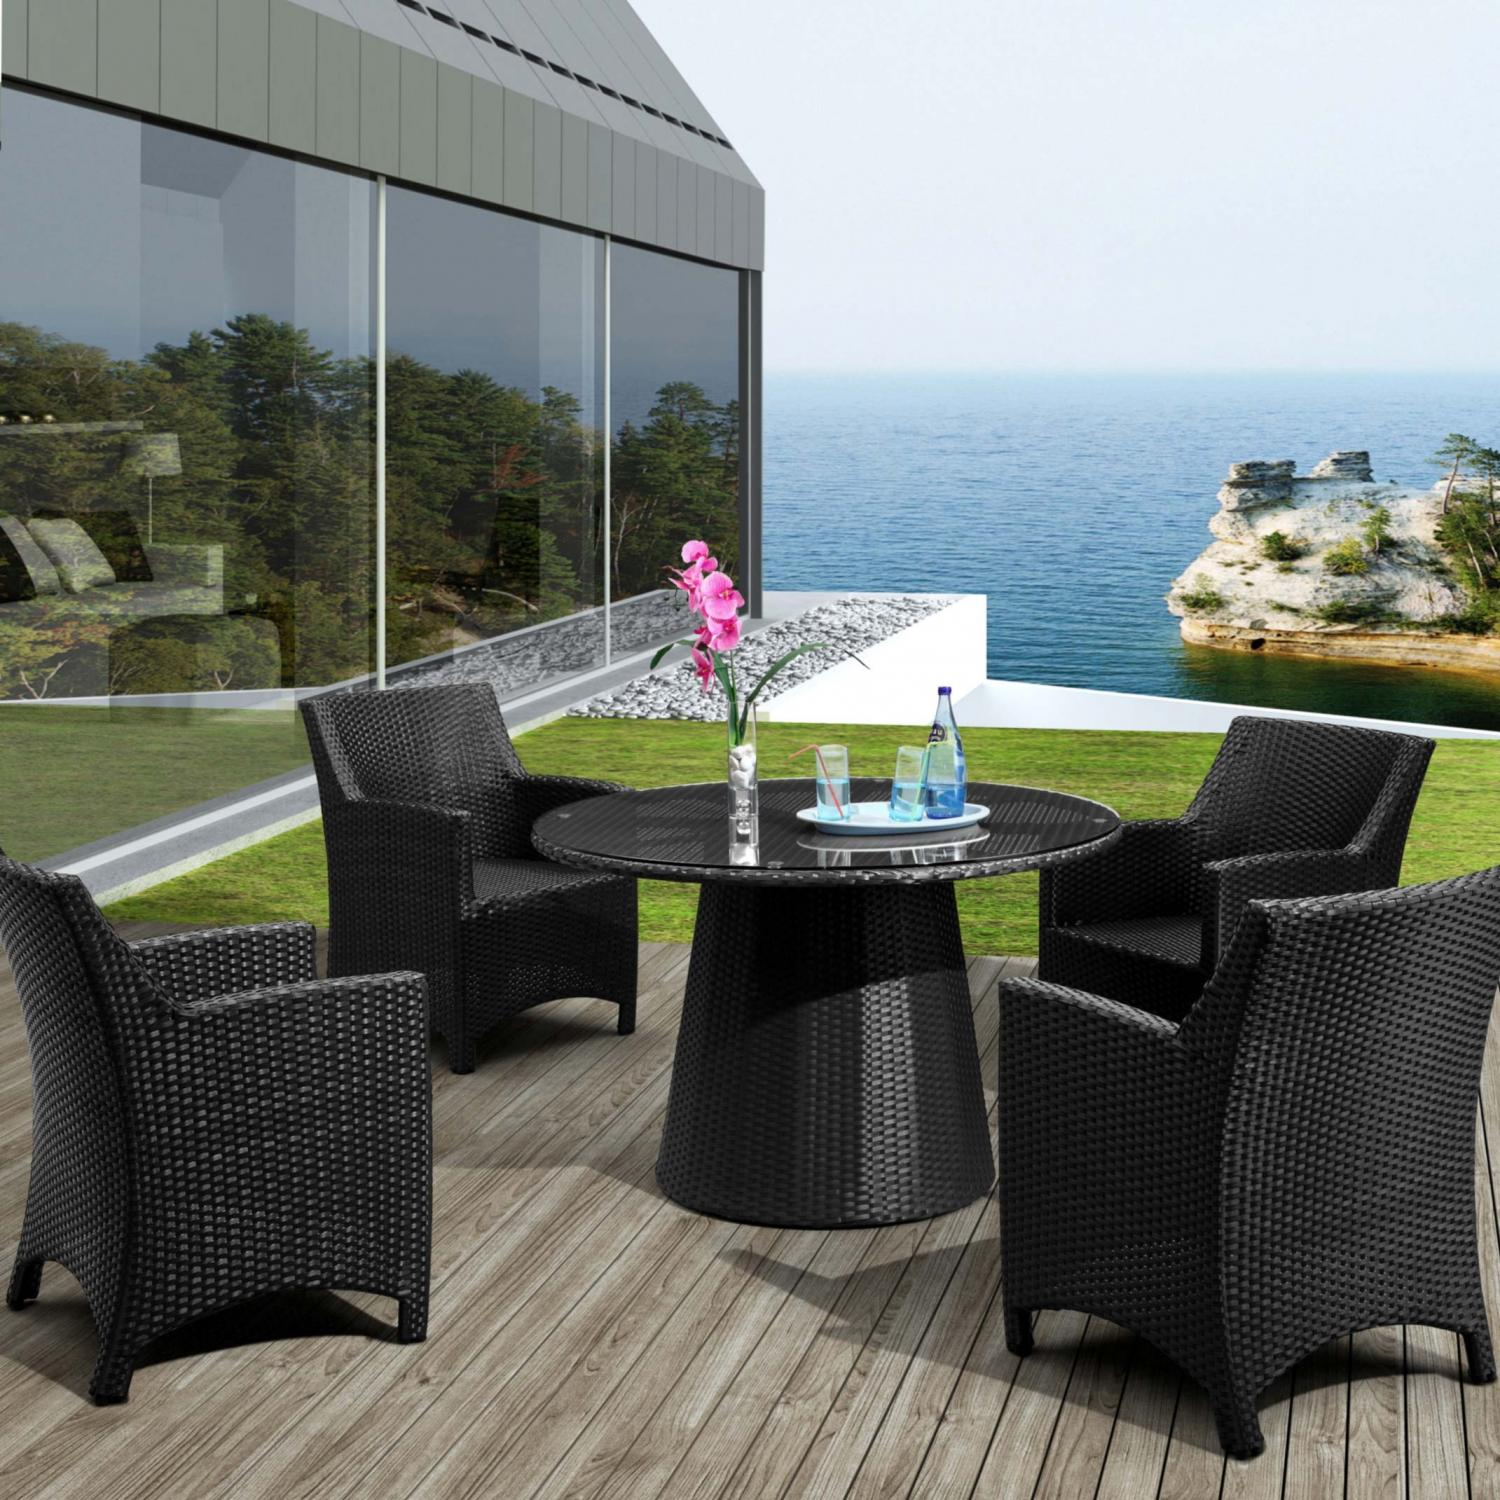 Zuo Modern Avalon Patio Dining Set With Glass Top Table - Seats 4 at Sears.com